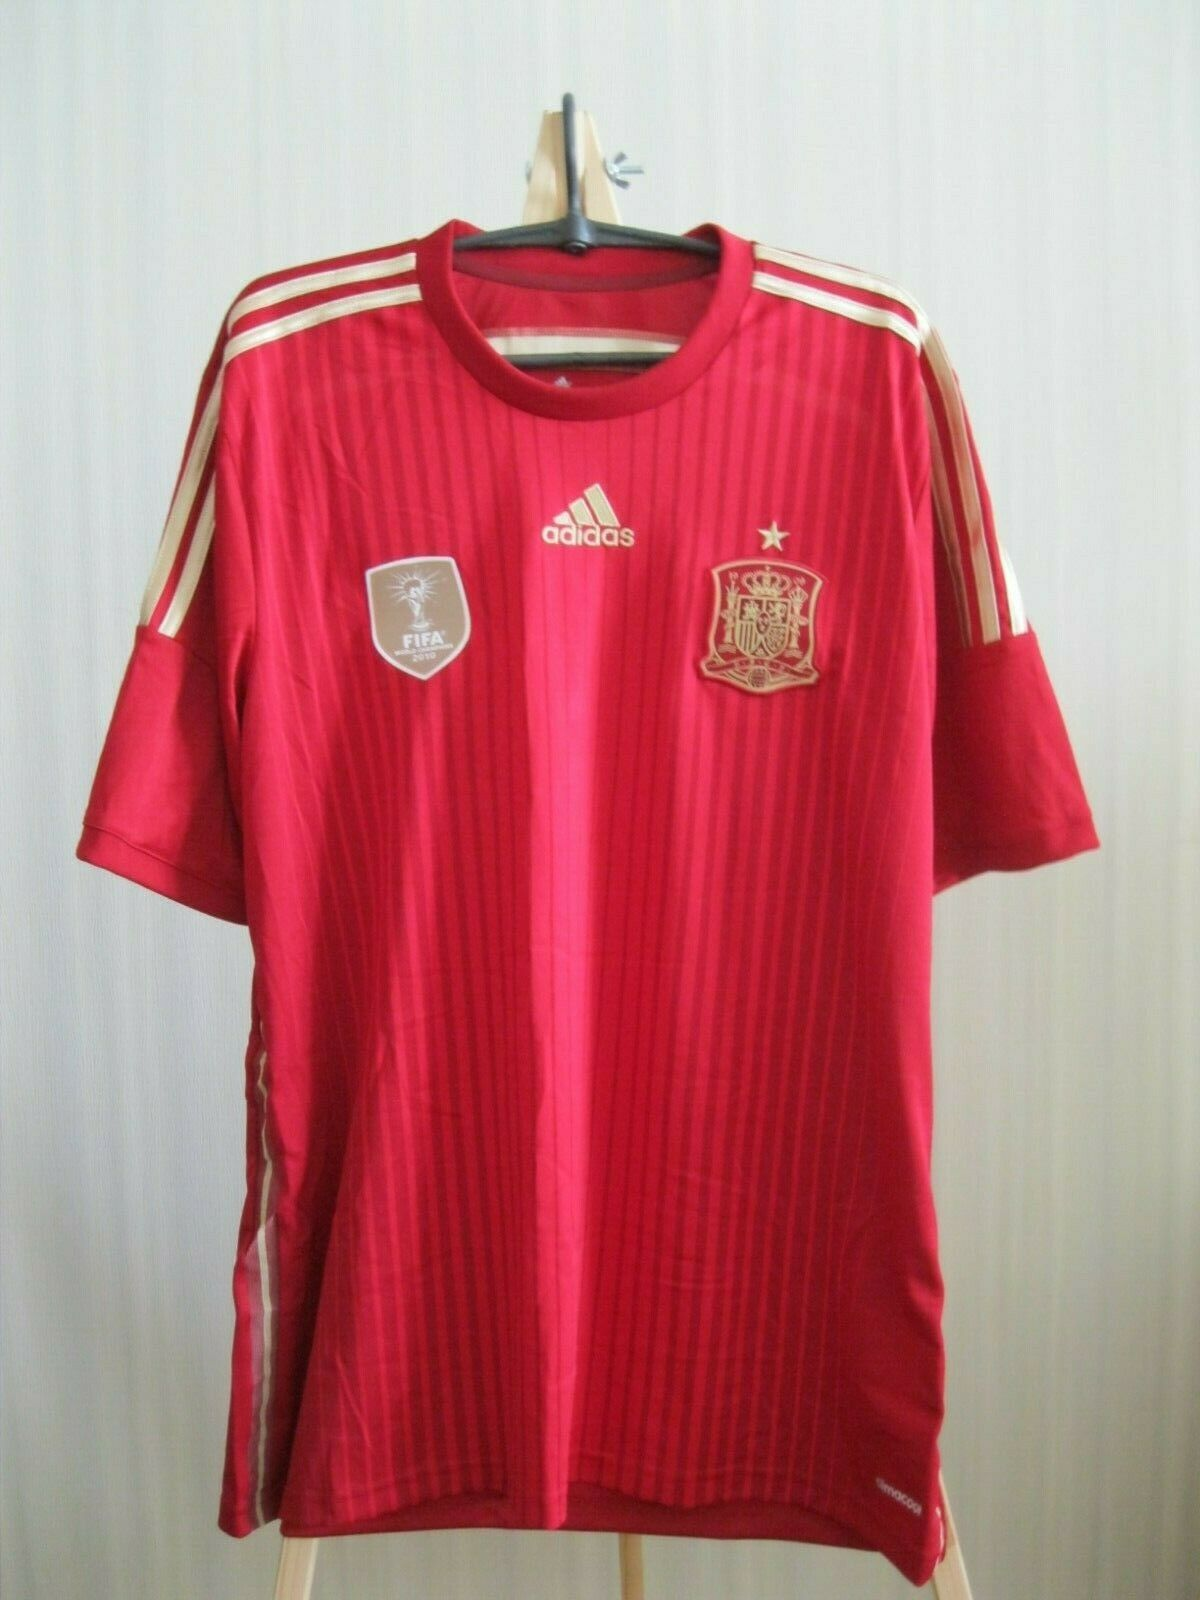 Spain national team 2014/2015 Home Size XL Adidas G85279 jersey